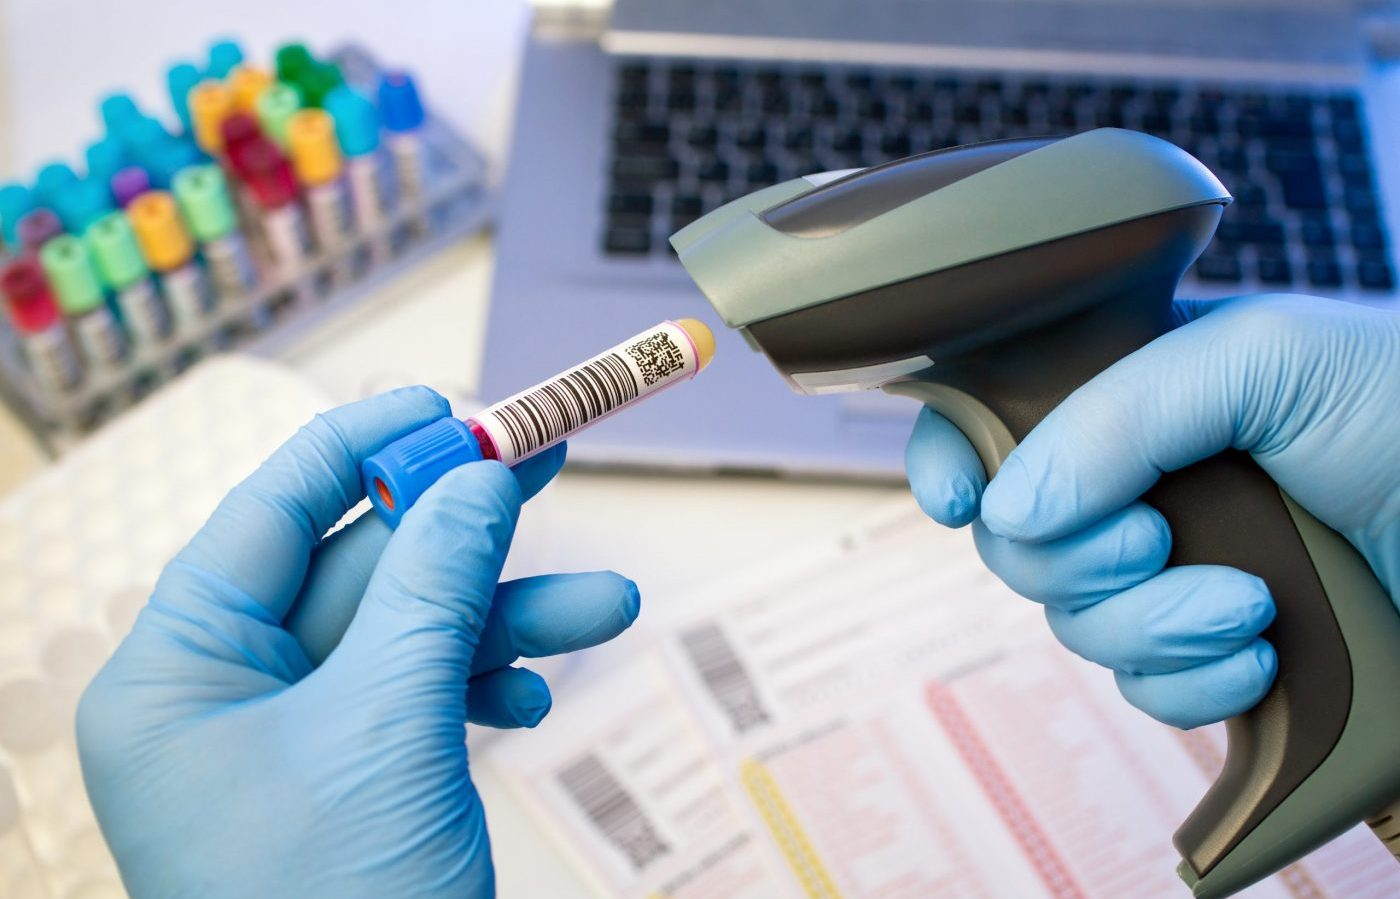 technician hands scanning bar codes on biological sample tube in the lab of blood bank